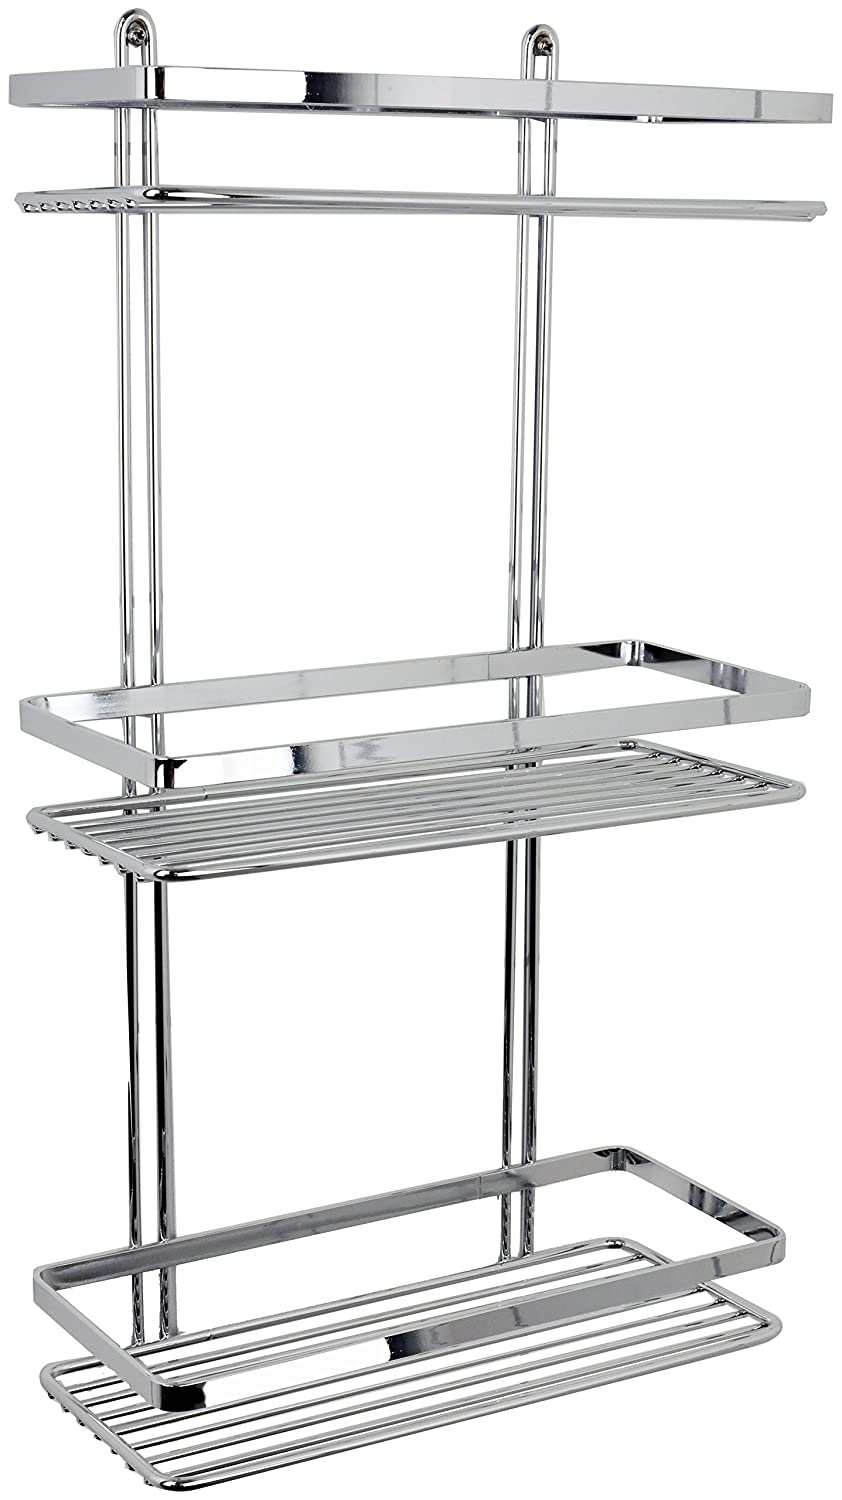 Satina WIRE Triple Shelf Shower Basket Chrome 3 Tier By Satina:  Amazon.co.uk: Kitchen U0026 Home